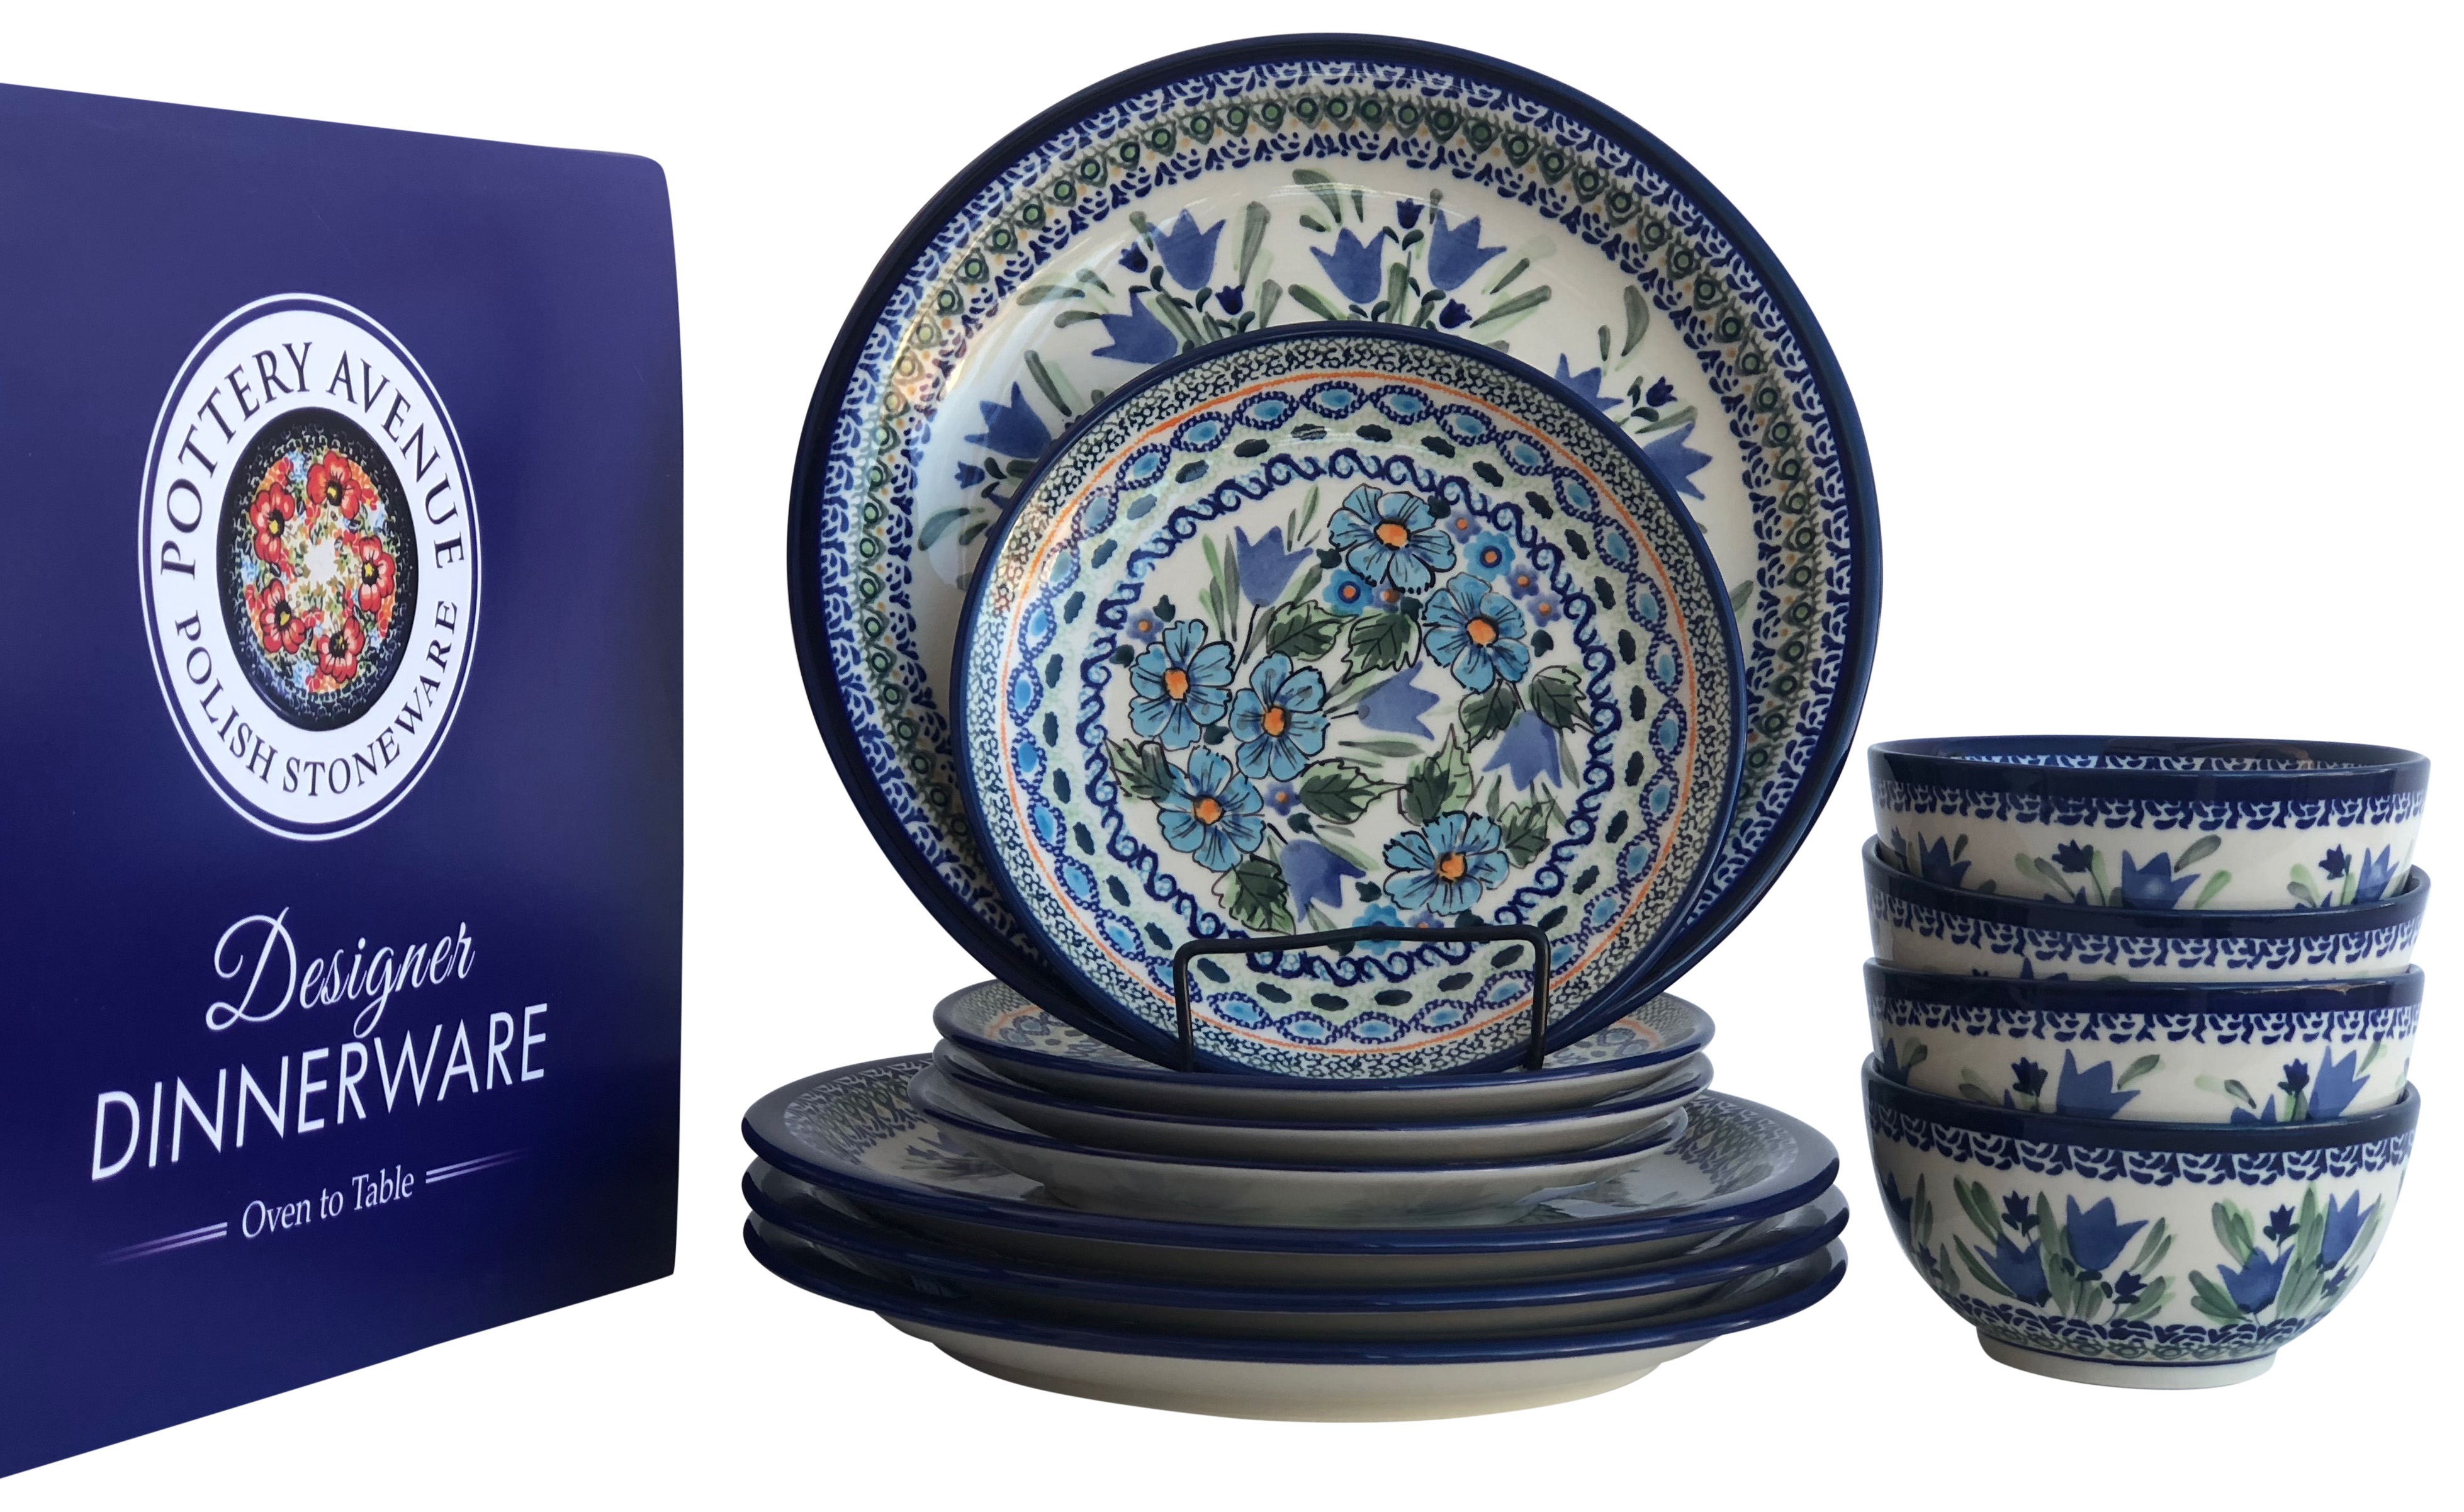 Pottery Avenue Launches Designer Dinnerware for 2020 Holiday Season